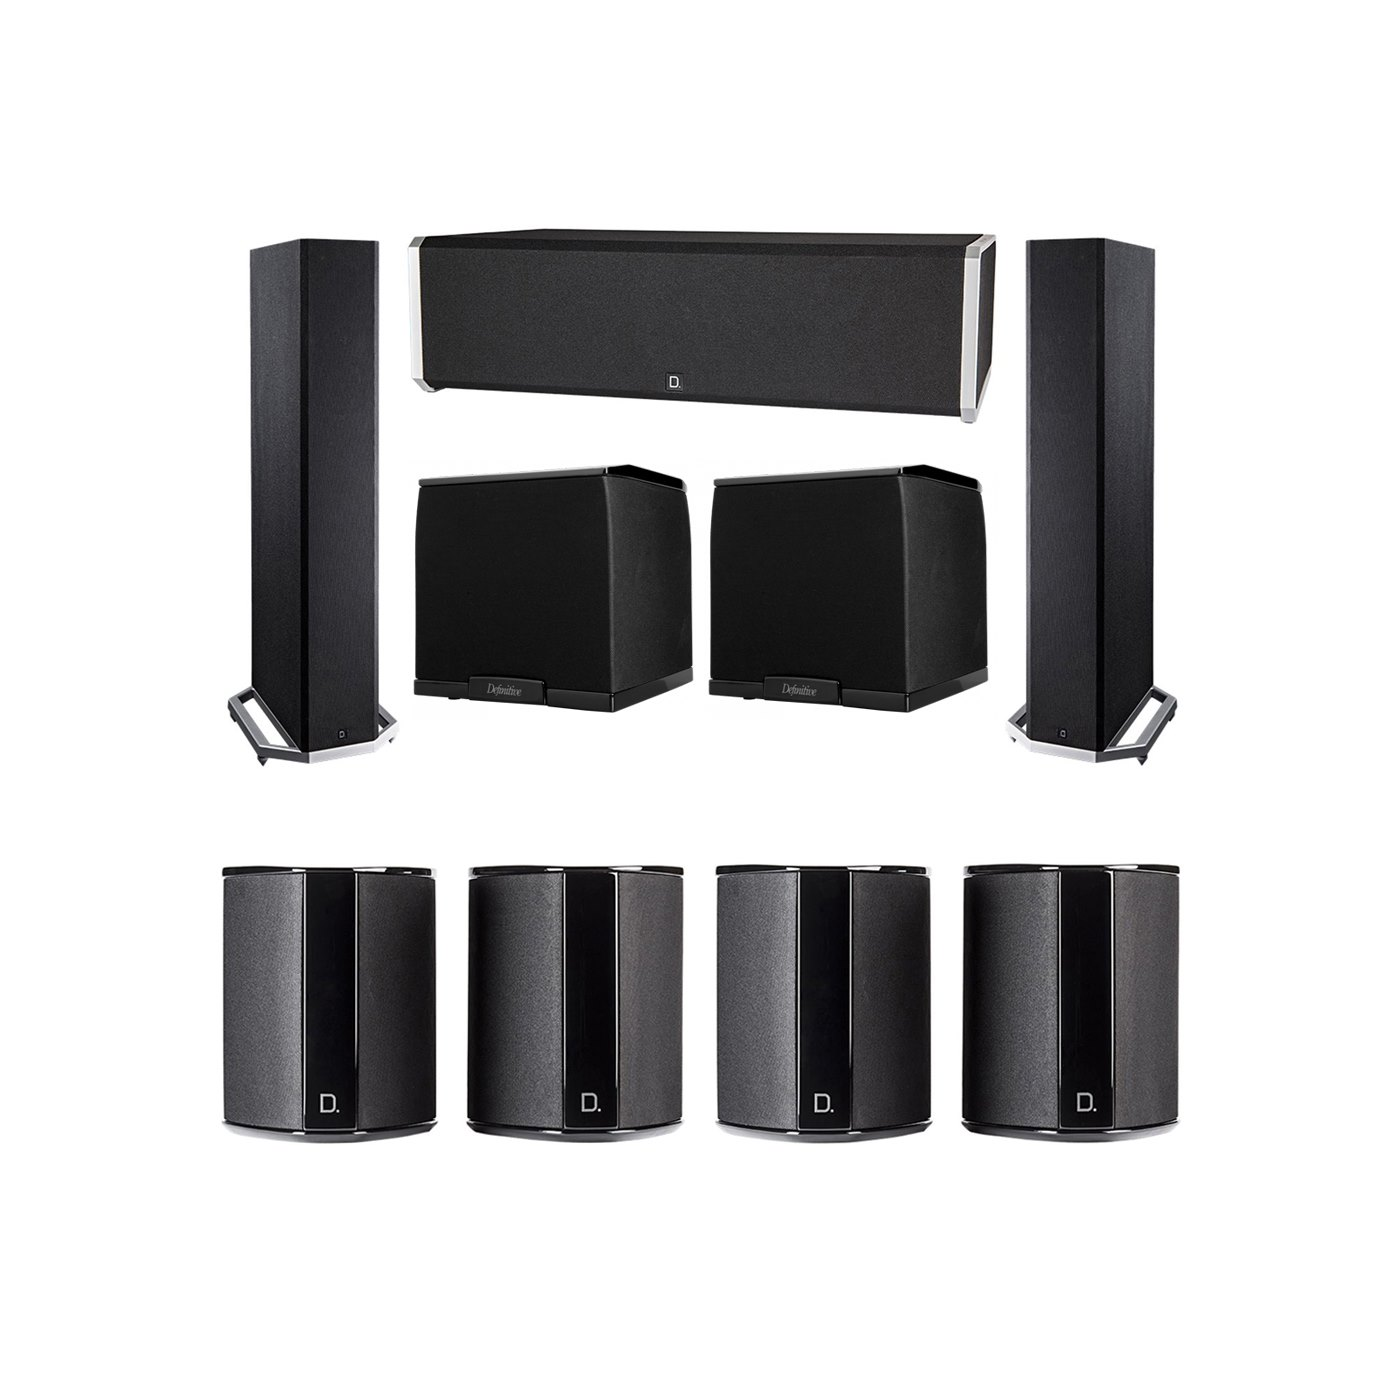 Definitive Technology 7.2 System with 2 BP9020 Tower Speakers, 1 CS9040 Center Channel Speaker, 4 SR9040 Surround Speaker, 2 Definitive Technology SuperCube 2000 Powered Subwoofer